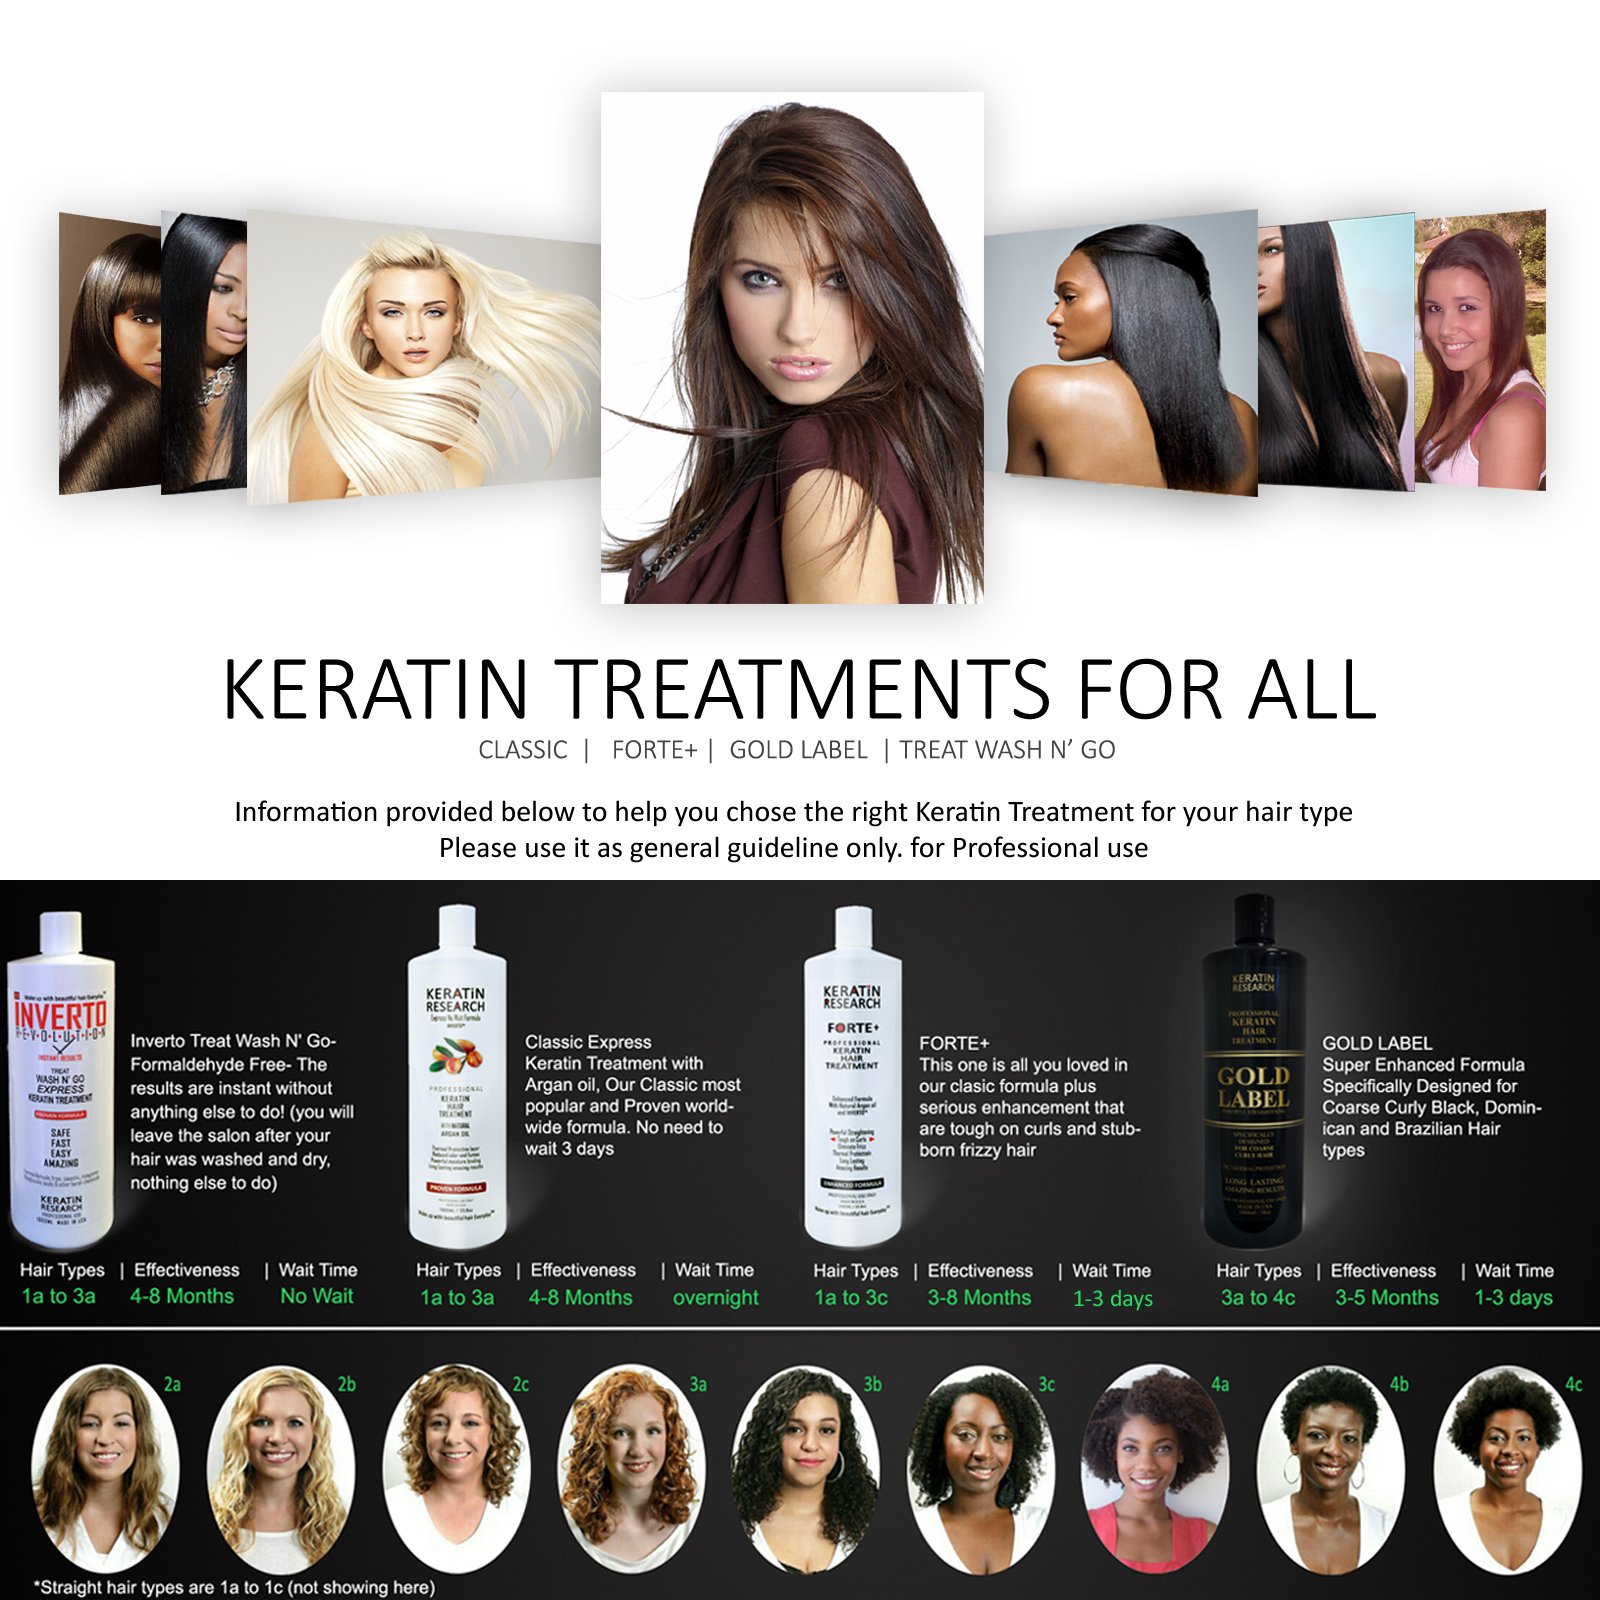 Forte Plus Extra Strength Brazilian Keratin Hair Treatment Professional 300ml Set Including Moisturizing Shampoo, Moisturizing Conditioner, Clarifying Shampoo, Brush/Comb Proven Amazing Results by KERATIN RESEARCH (Image #6)